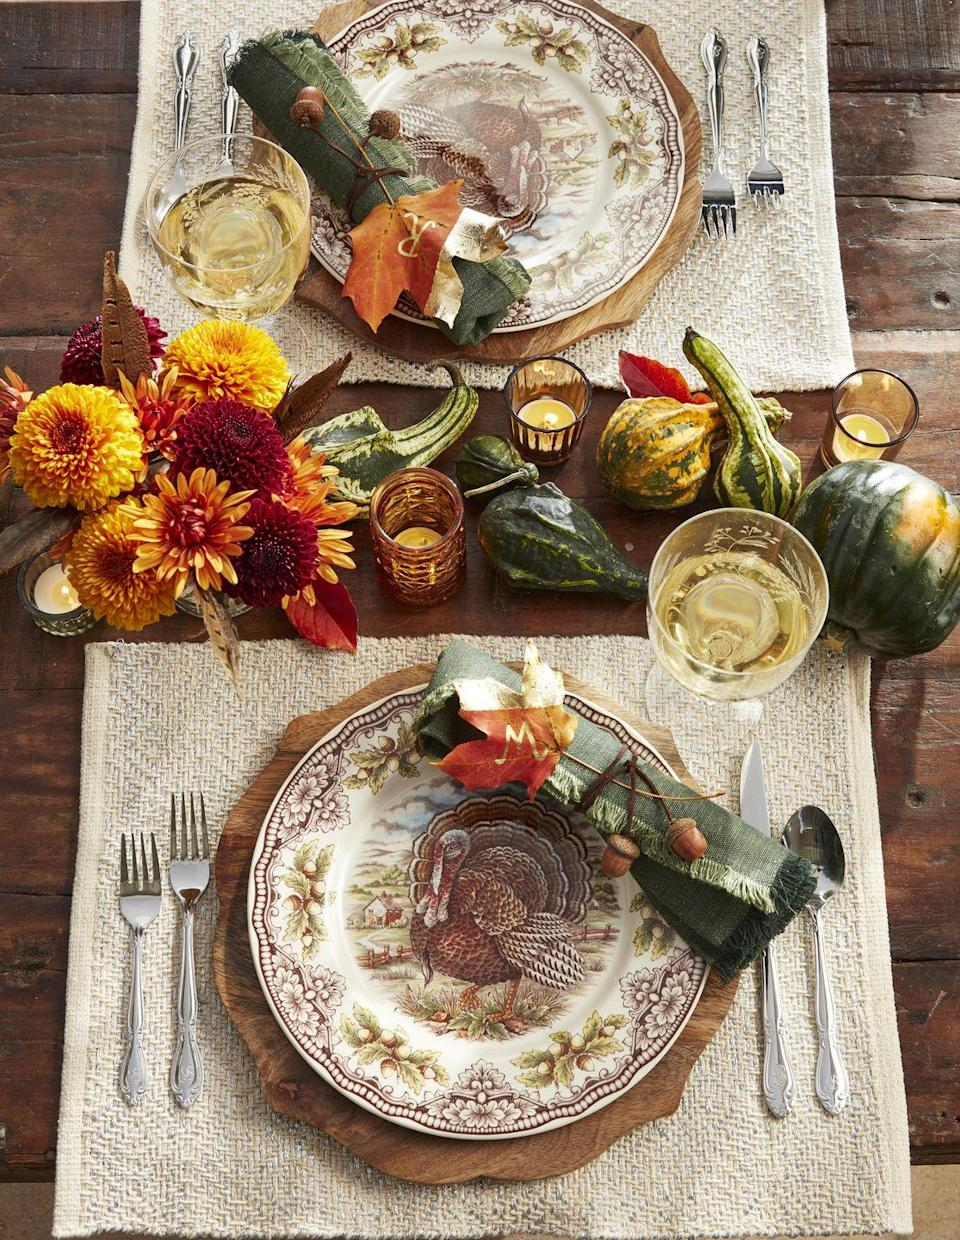 """<p>Nature is the theme of this classically fall hued table. Hot glue acorns to lengths of brown waxed twine and use to tie up rolled napkins. Apply gold leaf to a portion of a preserved maple leaf and use a gold paint pen to mark with guest's initials.</p><p><a class=""""link rapid-noclick-resp"""" href=""""https://www.amazon.com/Solino-Home-Linen-Dinner-Napkins/dp/B07GR4VZJS/ref=sr_1_1_sspa?tag=syn-yahoo-20&ascsubtag=%5Bartid%7C10050.g.2063%5Bsrc%7Cyahoo-us"""" rel=""""nofollow noopener"""" target=""""_blank"""" data-ylk=""""slk:SHOP NAPKINS"""">SHOP NAPKINS</a></p>"""